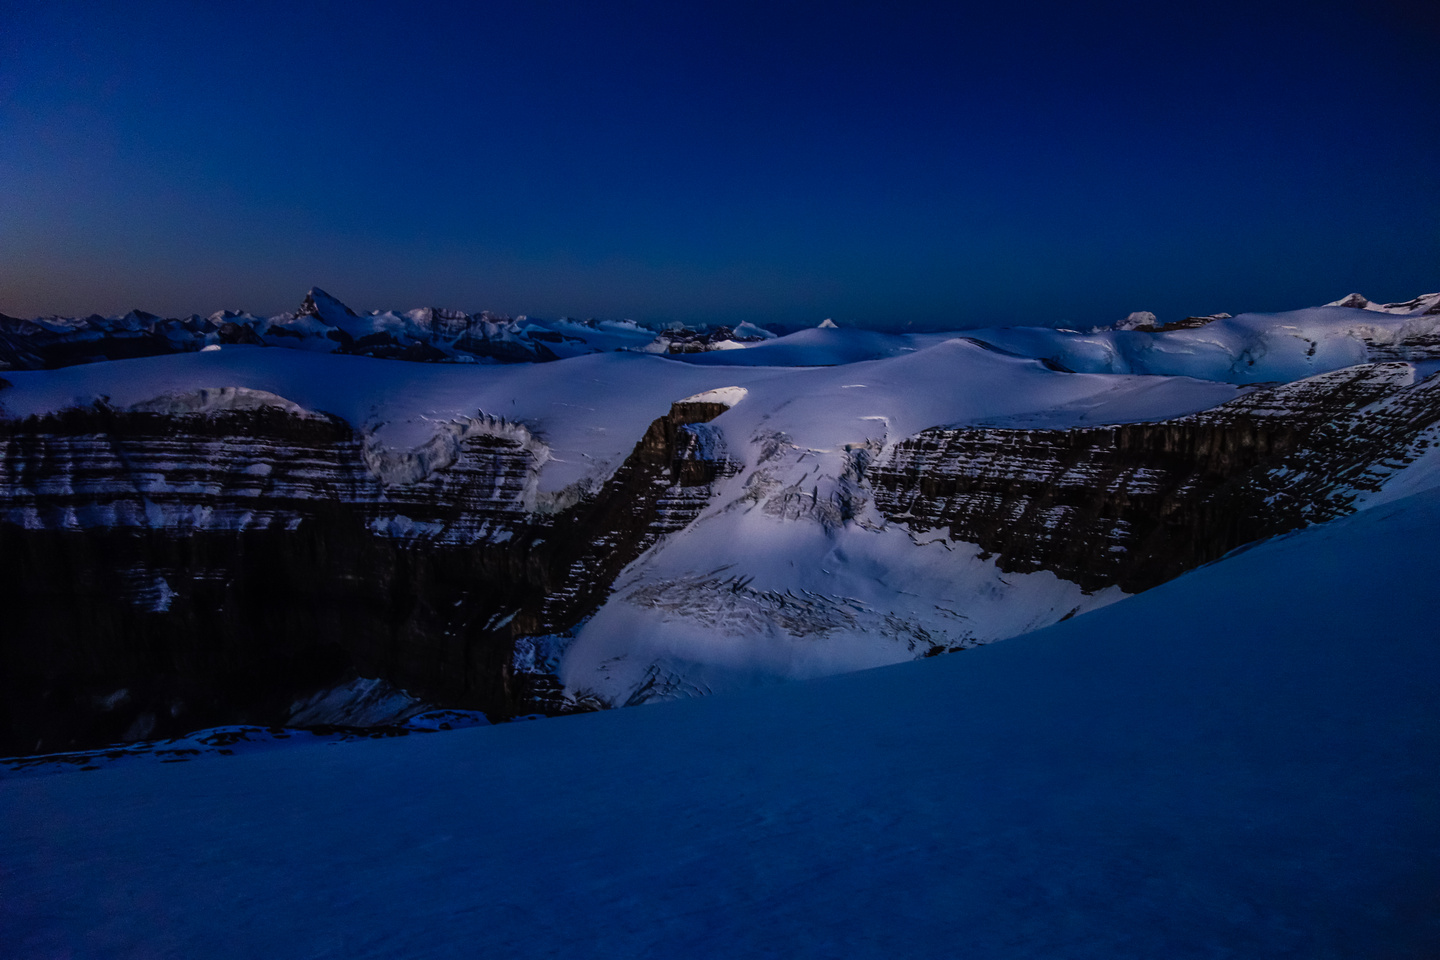 Pre-dawn on the Monchy Icefield.